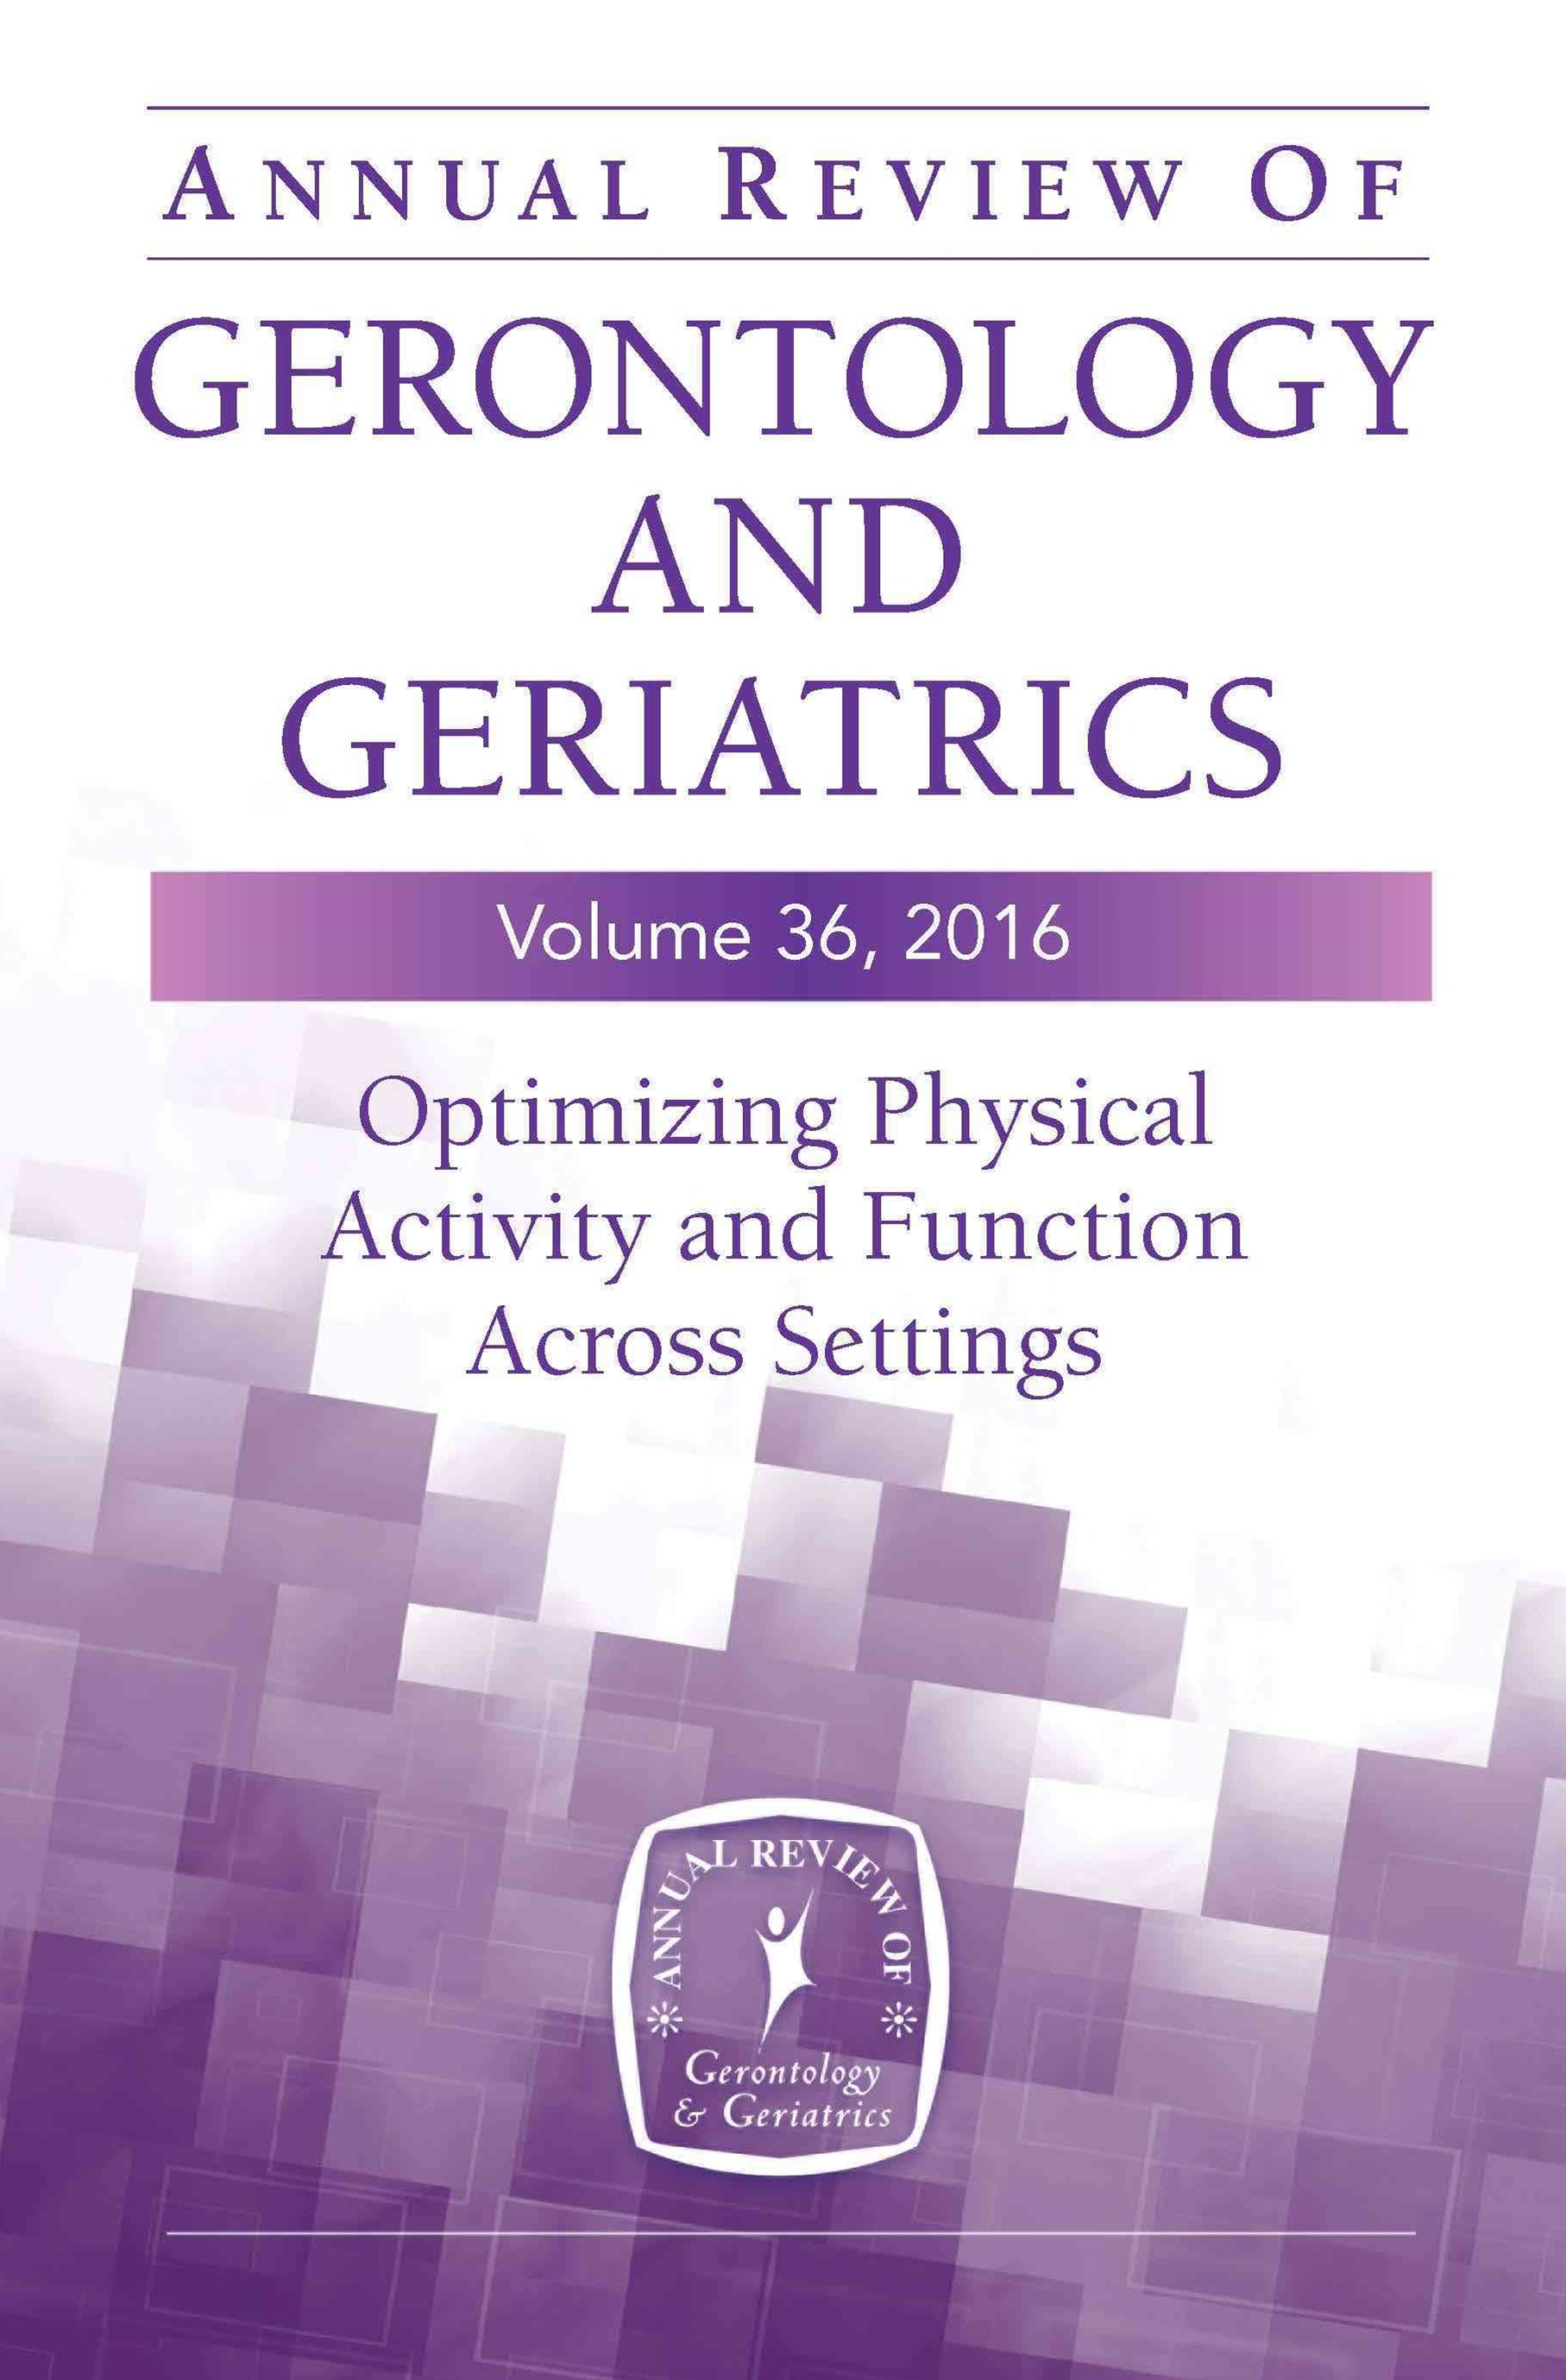 Annual Review of Gerontology and Geriatrics, Volume 36 2016